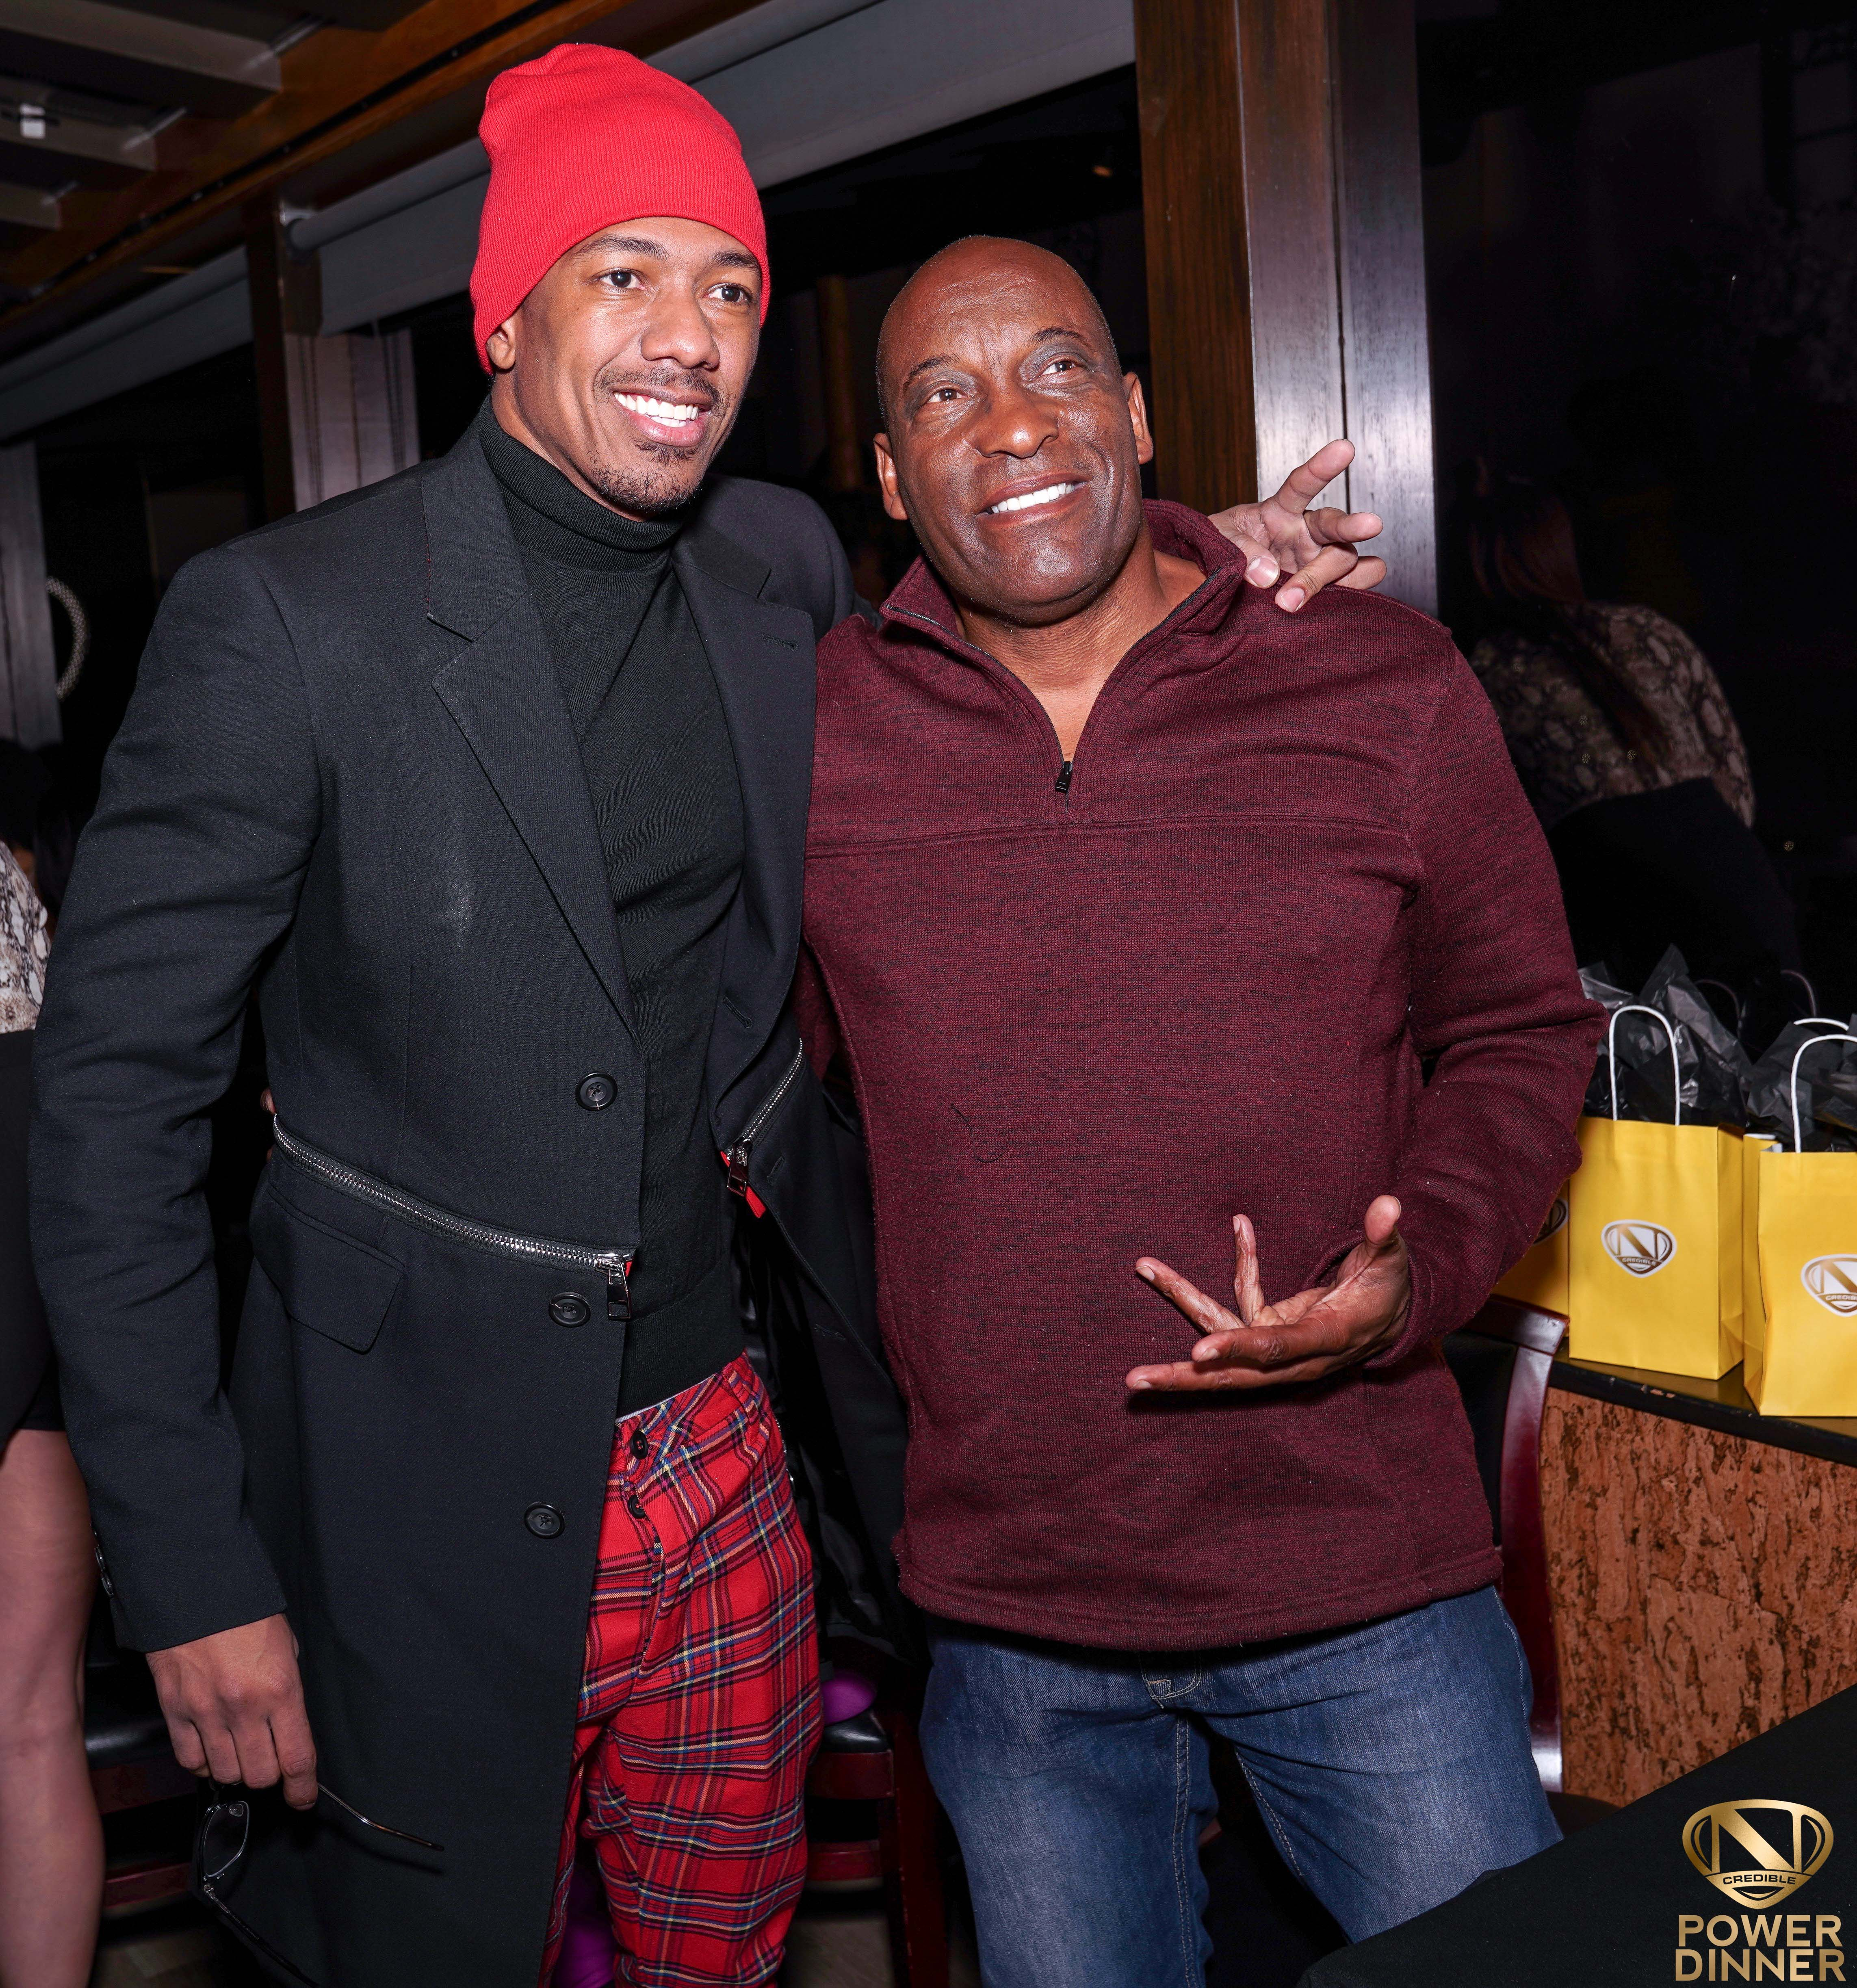 Ncredible Power Dinner (photo gallery)